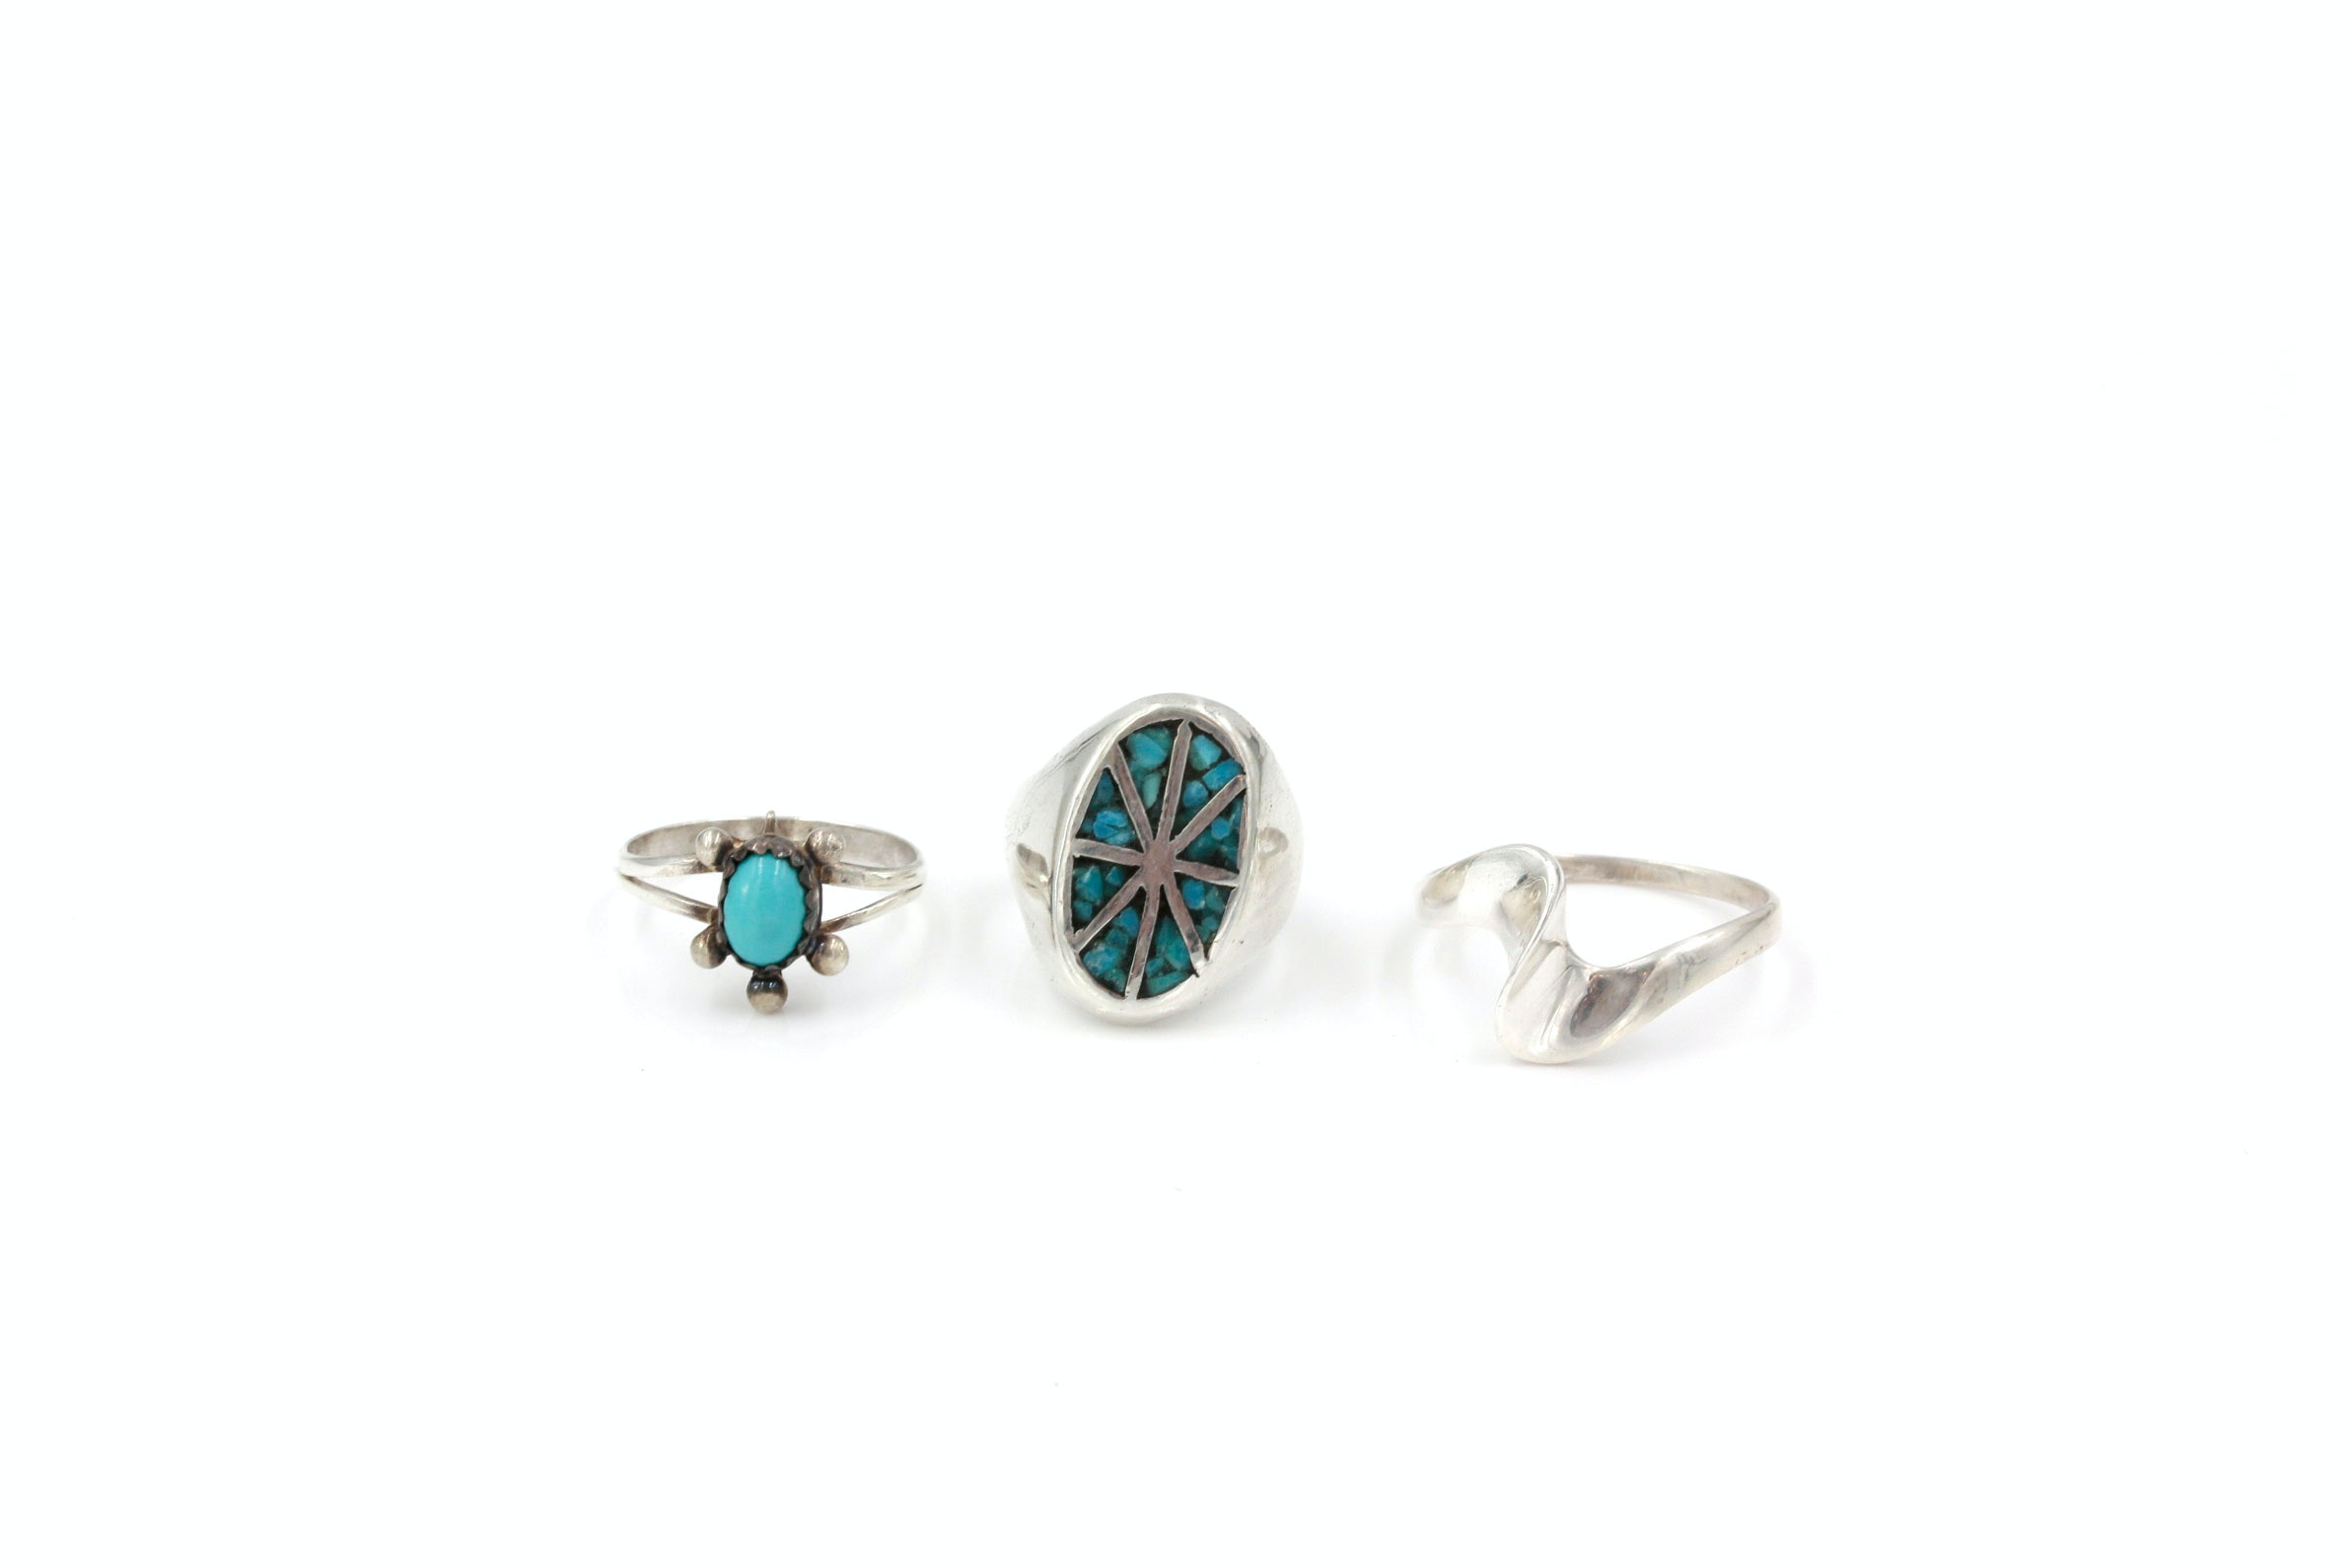 Pair of Sterling Silver and Turquoise Rings